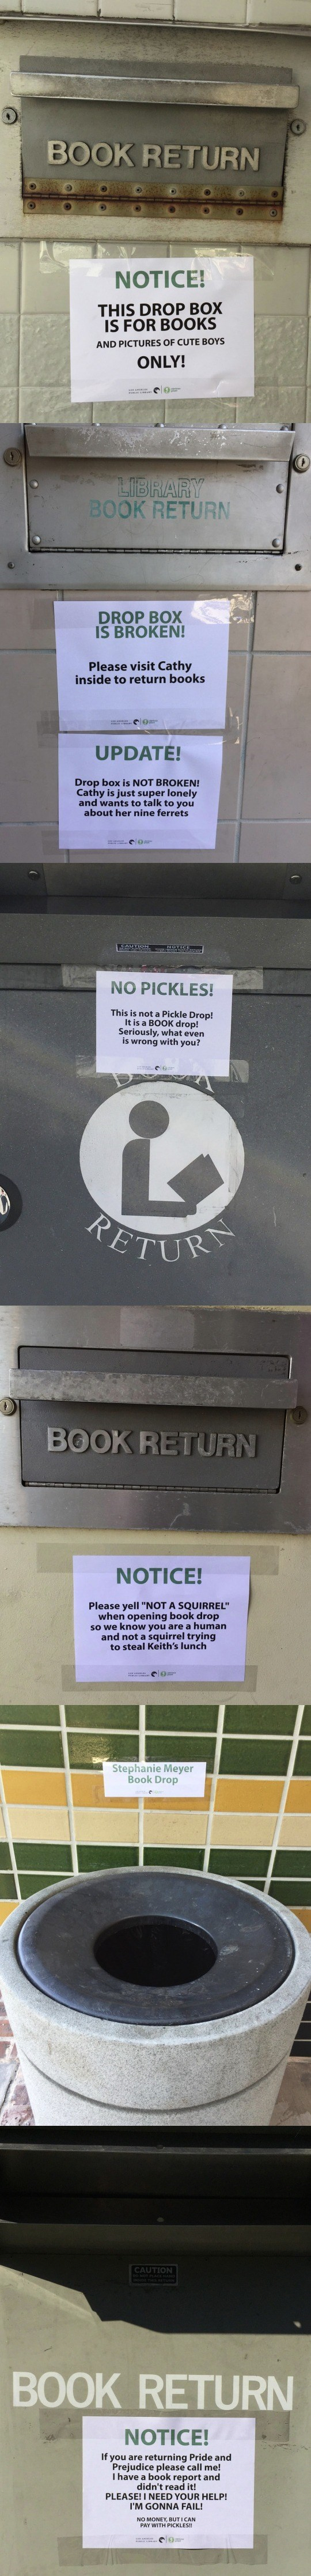 funny library book drop